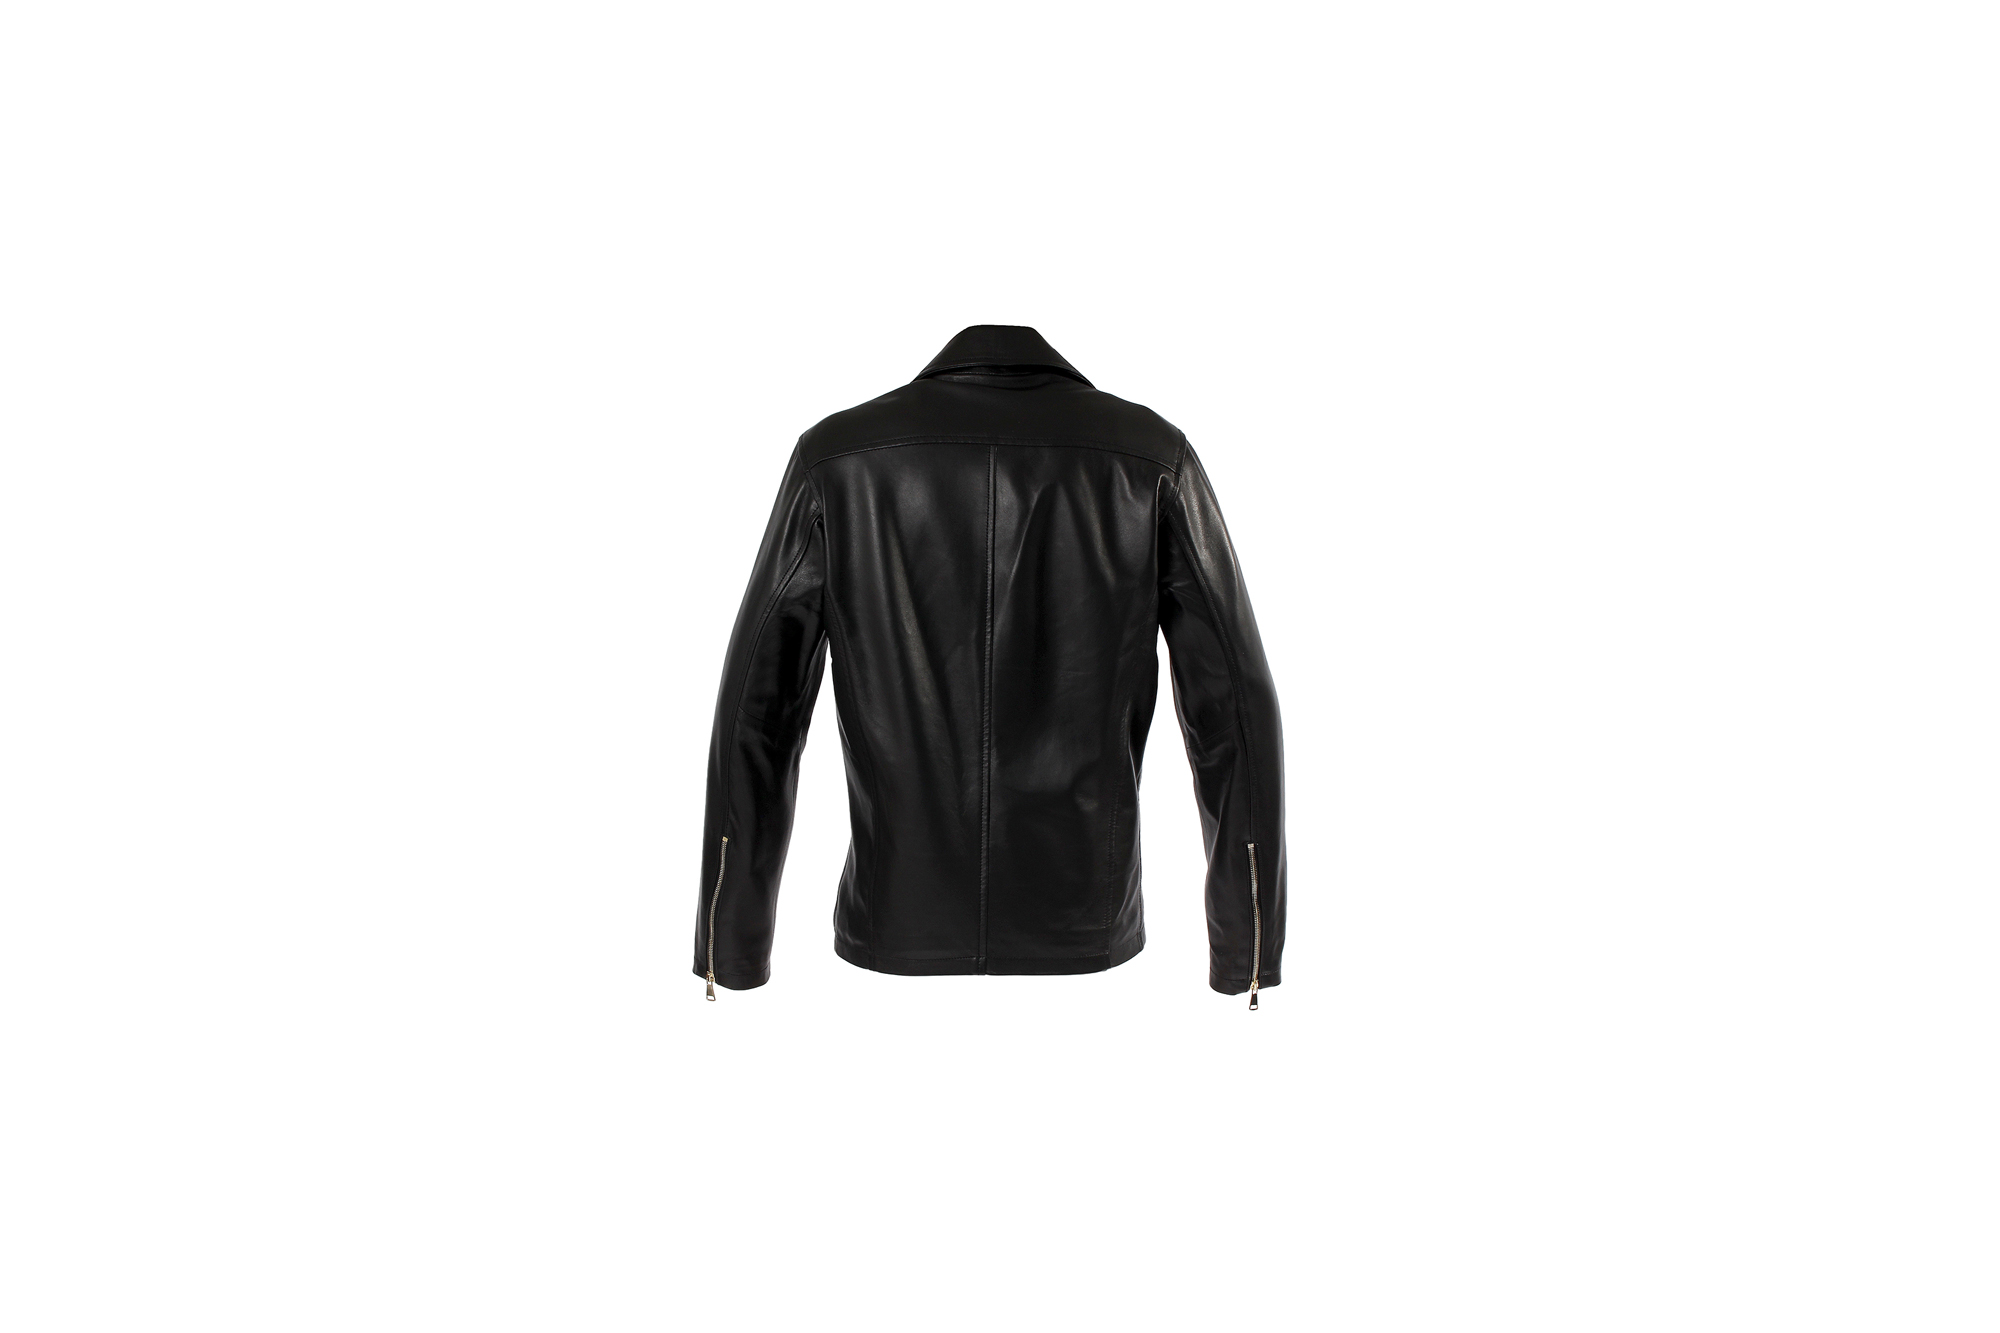 SILENCE (サイレンス) Double Riders Jacket (ダブル ライダース ジャケット) Goatskin Leather (ゴートスキンレザー) GOLD ZIP (ゴールドジップ) レザー ライダース ジャケット NERO GOLD ZIP (ブラックゴールドジップ) Made in italy (イタリア製) 2021 春夏新作 愛知 名古屋 Alto e Diritto altoediritto アルトエデリット